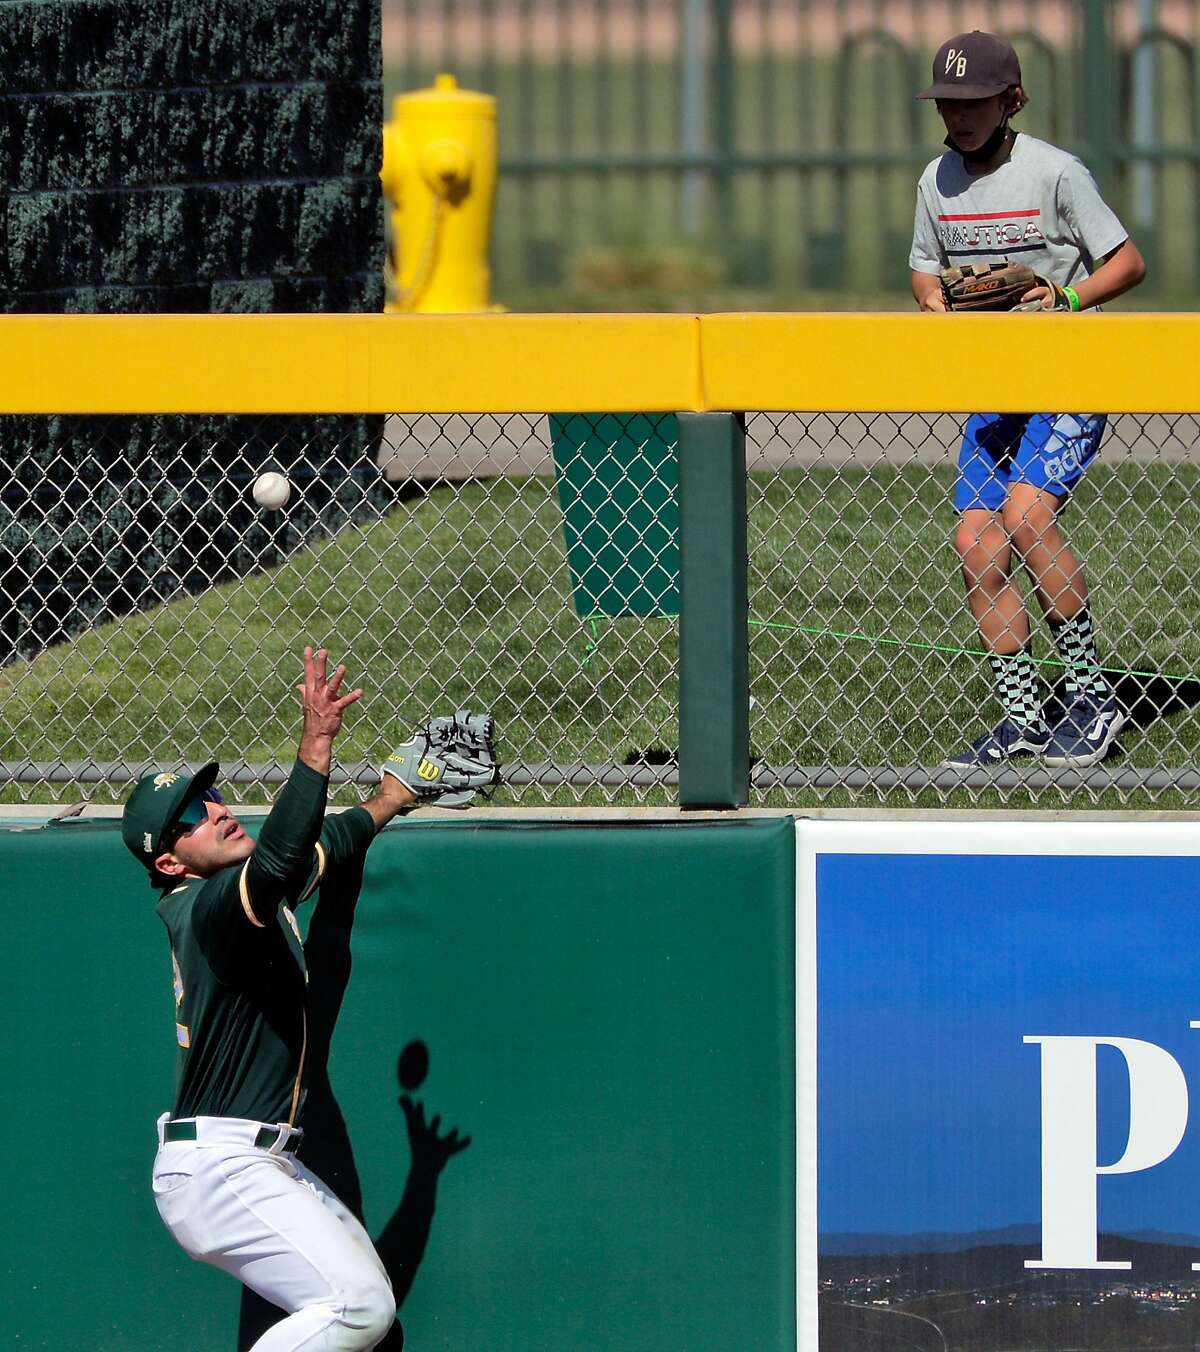 Ramon Laureano (22) grabs for a ball hit against the fence by Jose Iglesias (4) in the fourth inning as the Oakland Athletics played the Los Angeles Angels at Hohokam Stadium in Mesa, Ariz., on Friday, March 5, 2021.